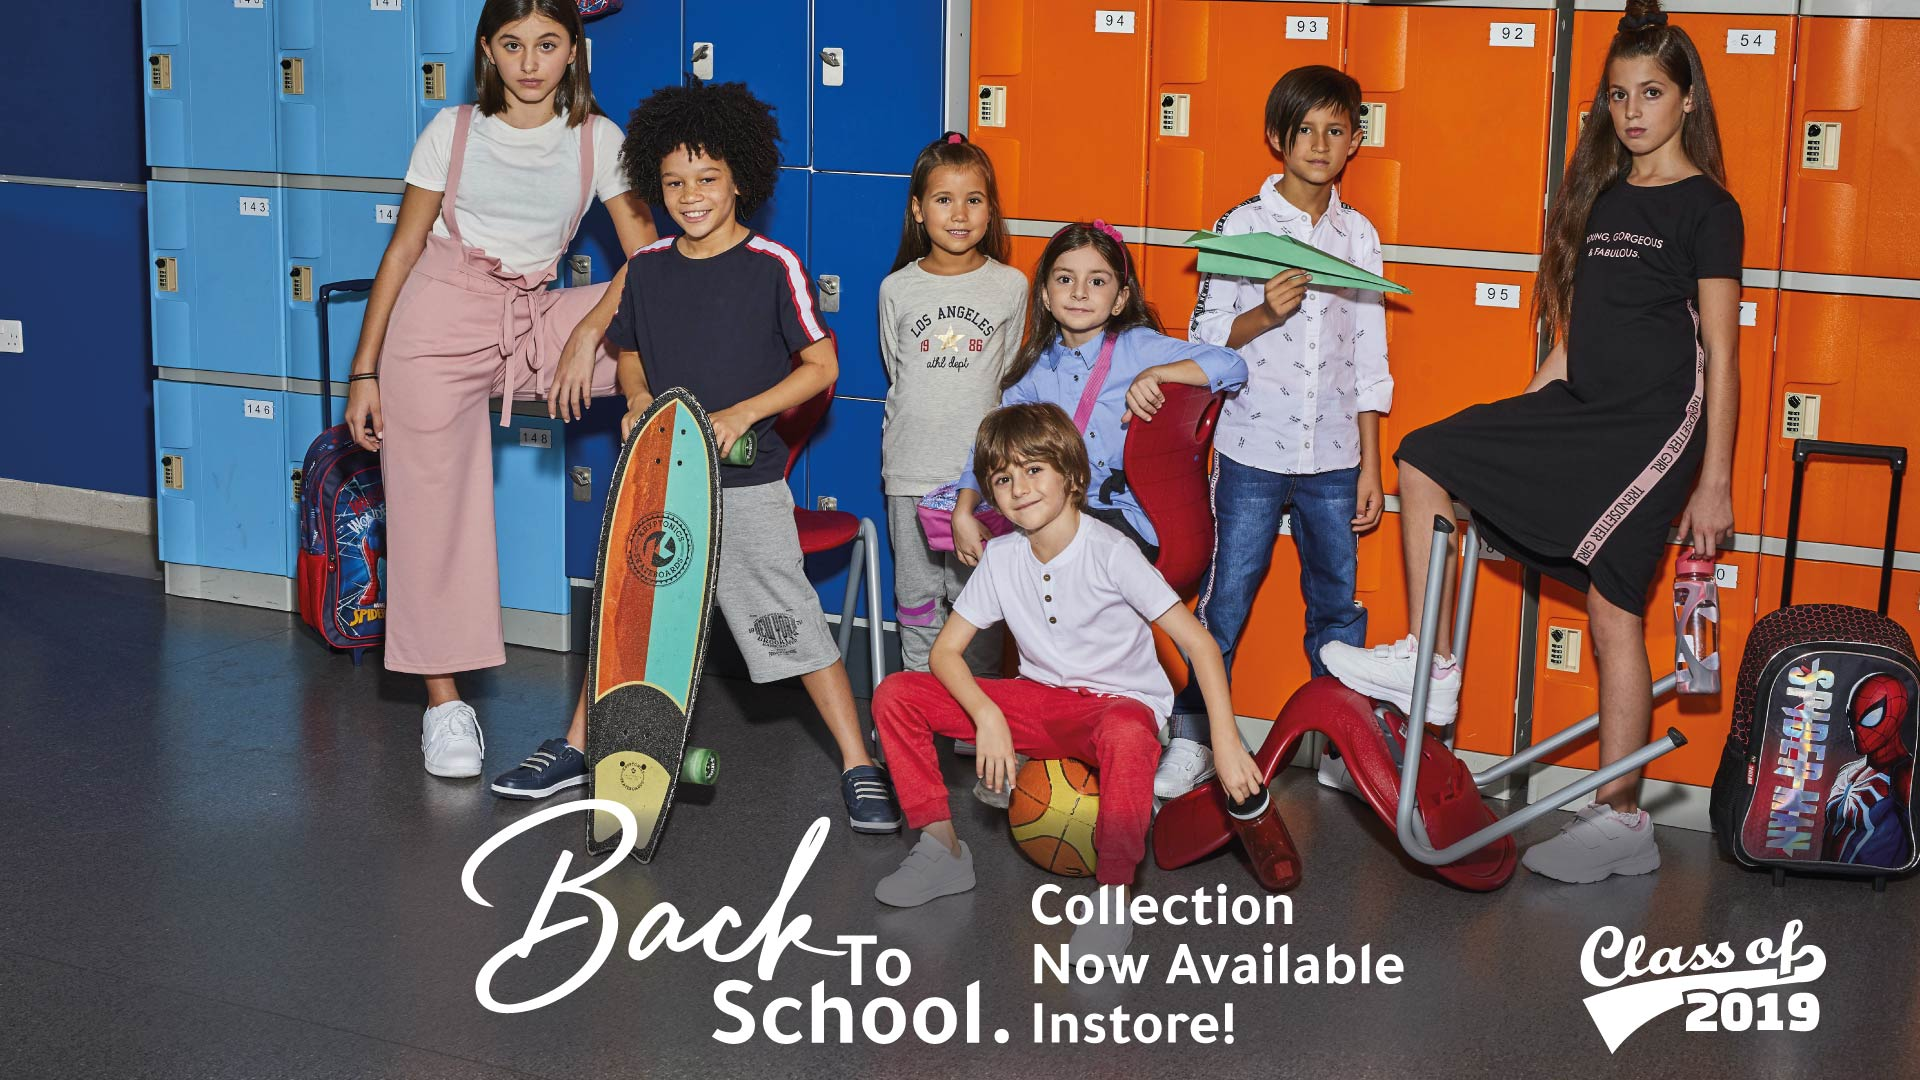 Kids fashion back-to-school collection